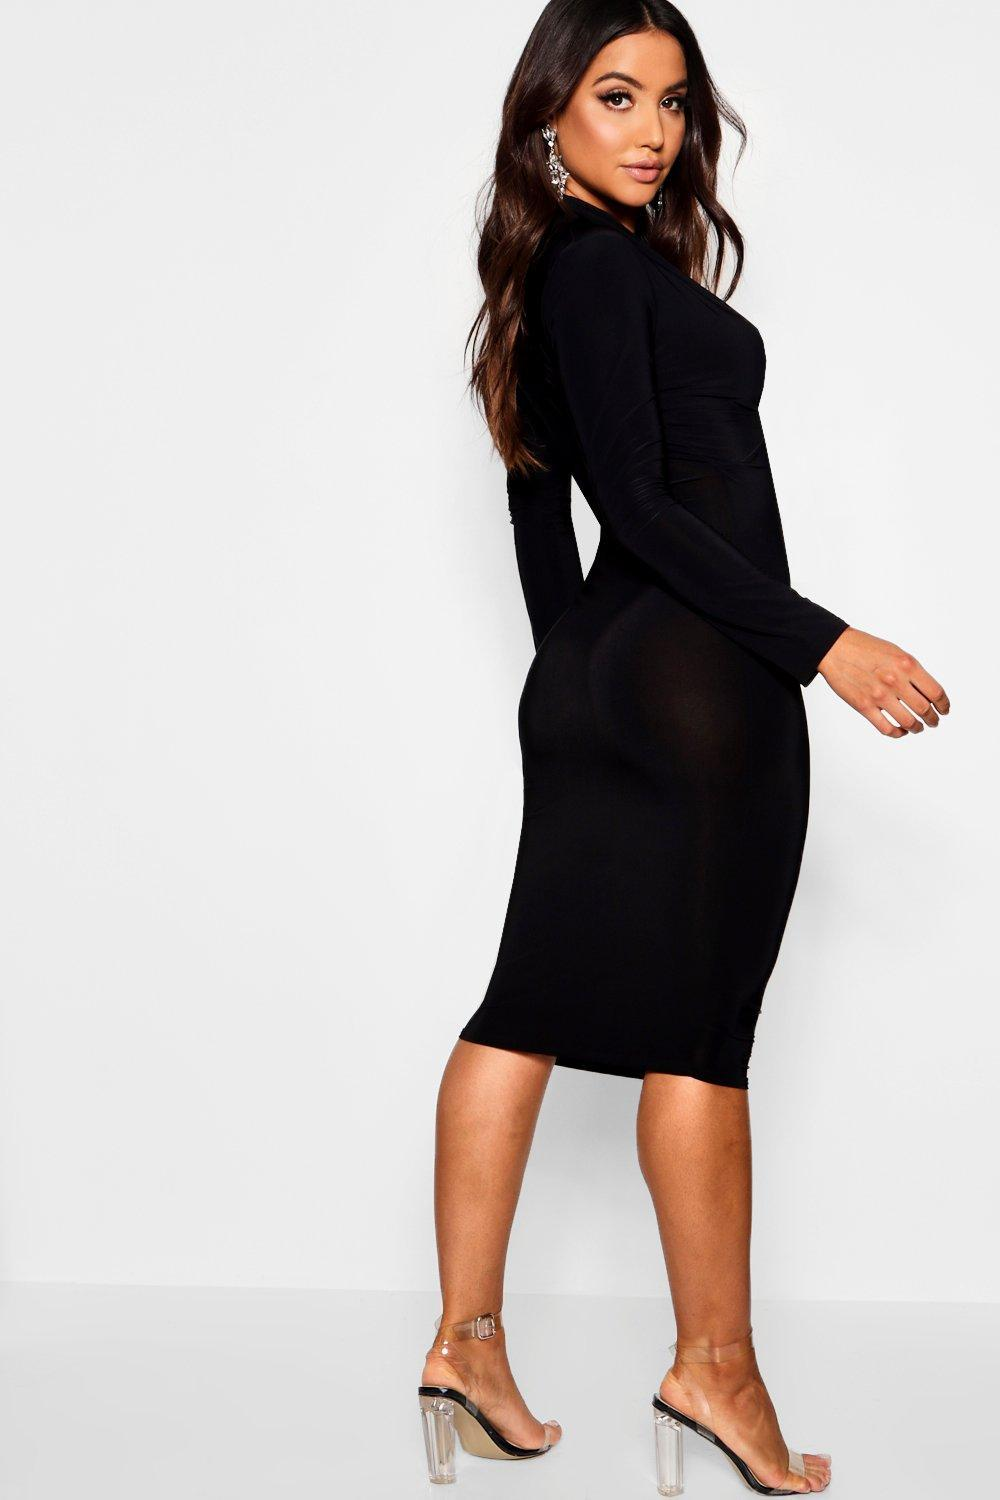 6476f00c39c8 Boohoo - Multicolor Slinky Plunge Neck Long Sleeve Midi Dress - Lyst. View  fullscreen